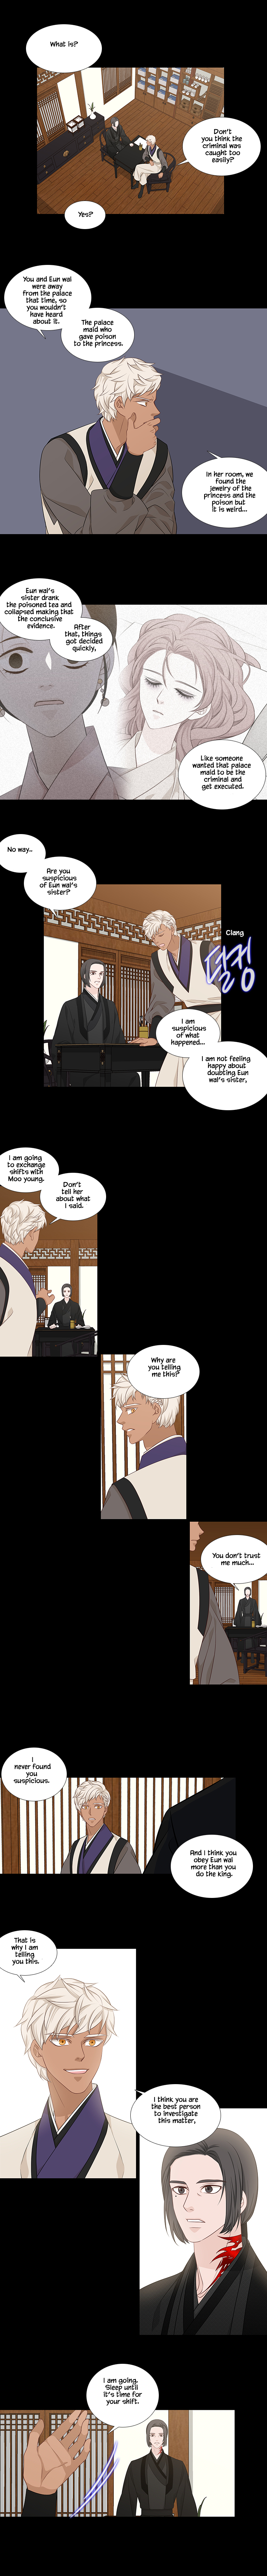 Heavenly Match - chapter 229 - #3